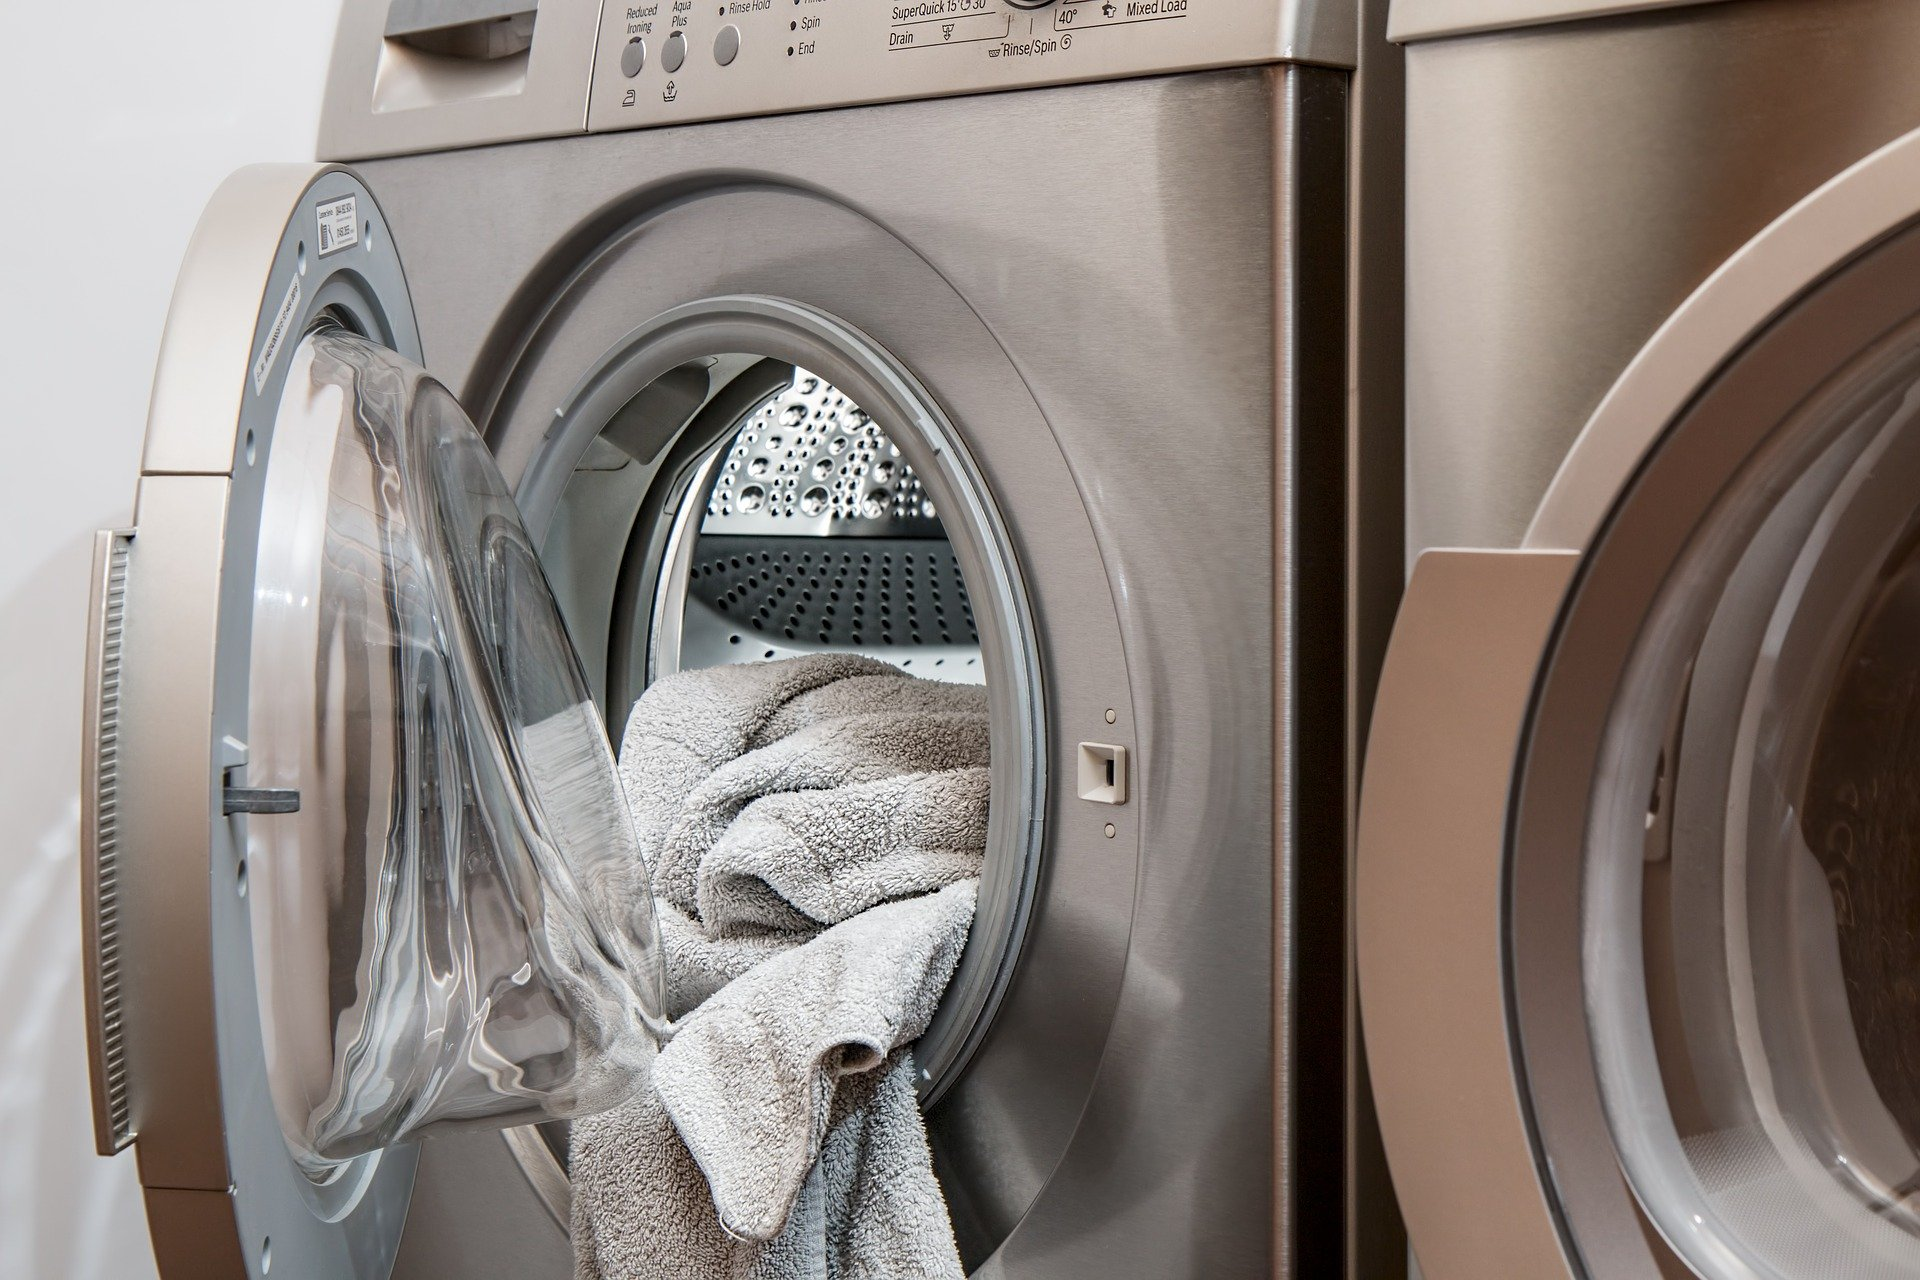 How to Save Energy While Doing Laundry